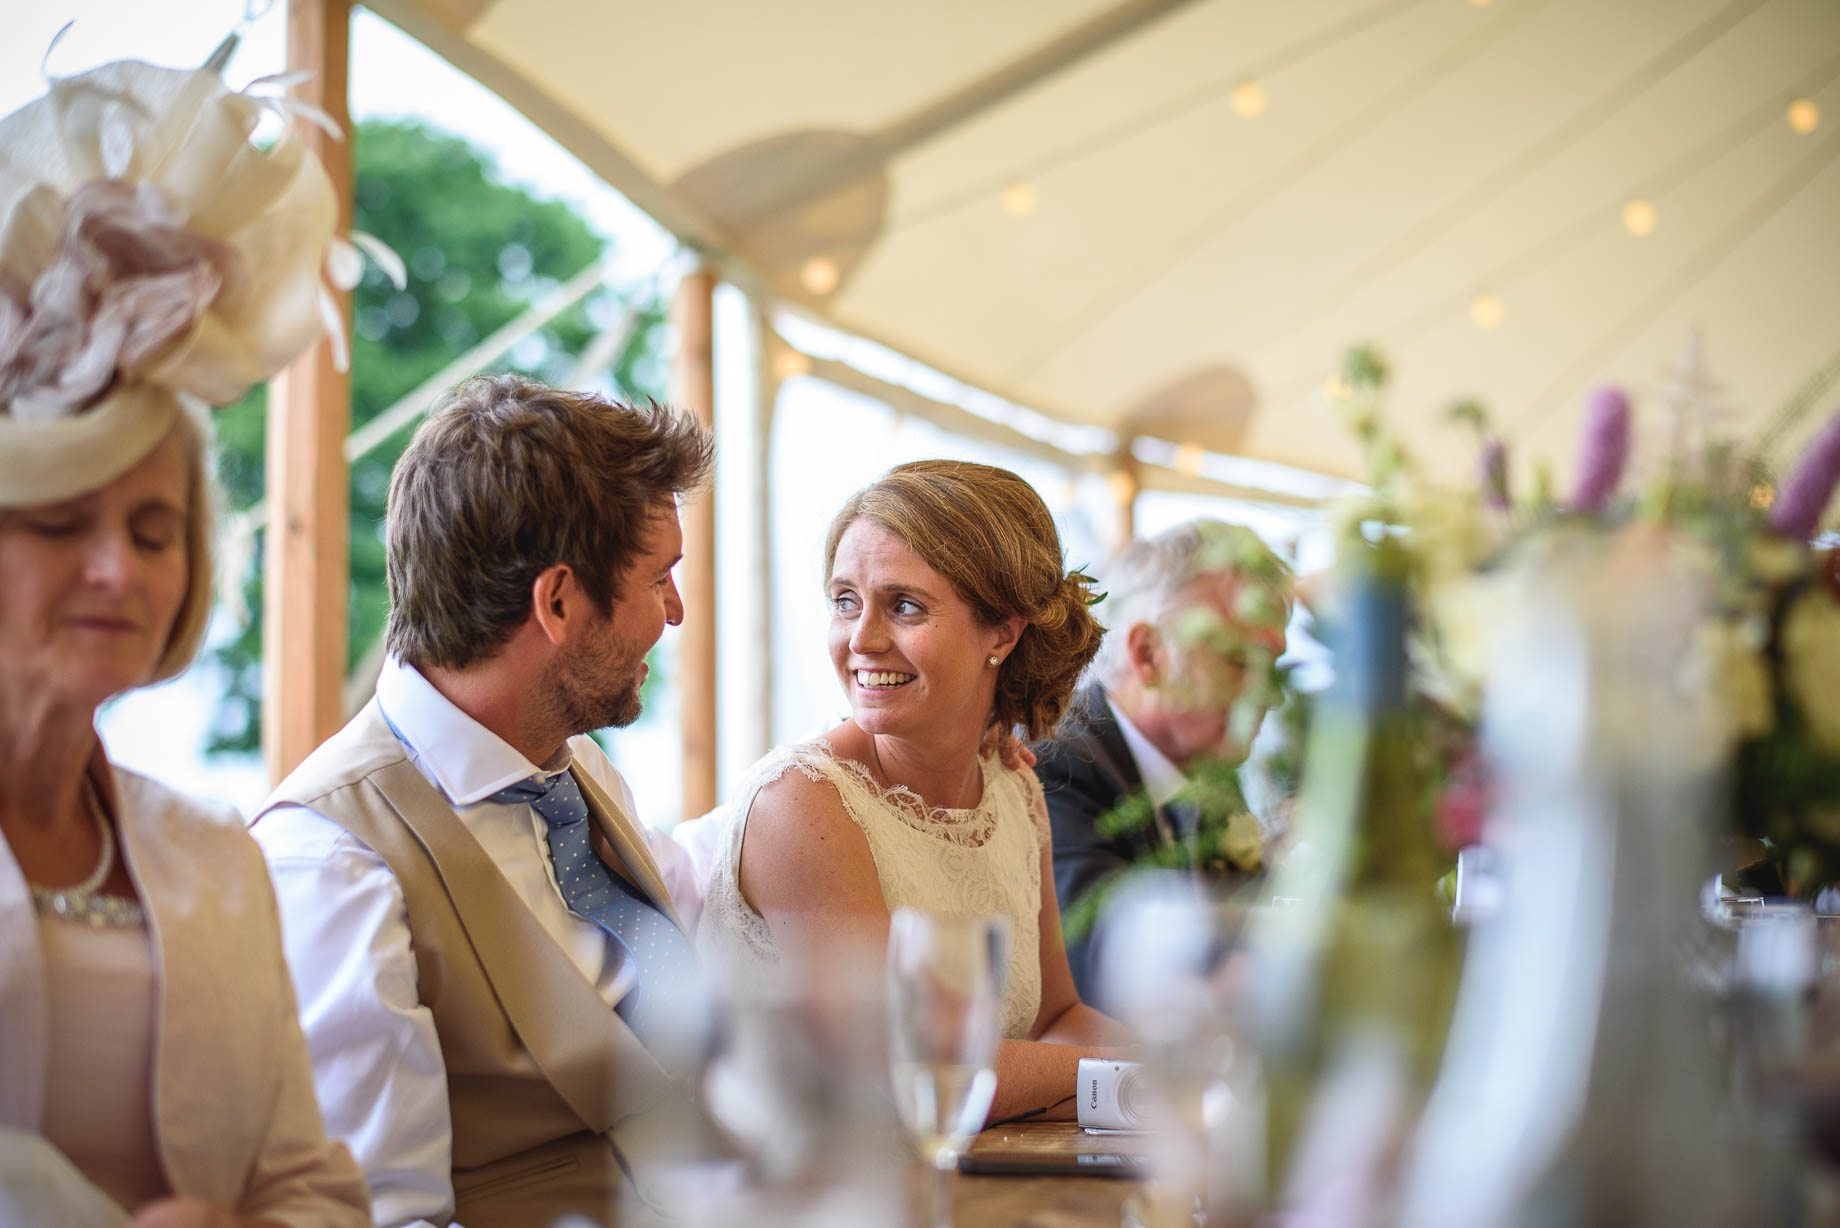 Wiltshire wedding photography by Guy Collier - Lucie and Matt (142 of 198)